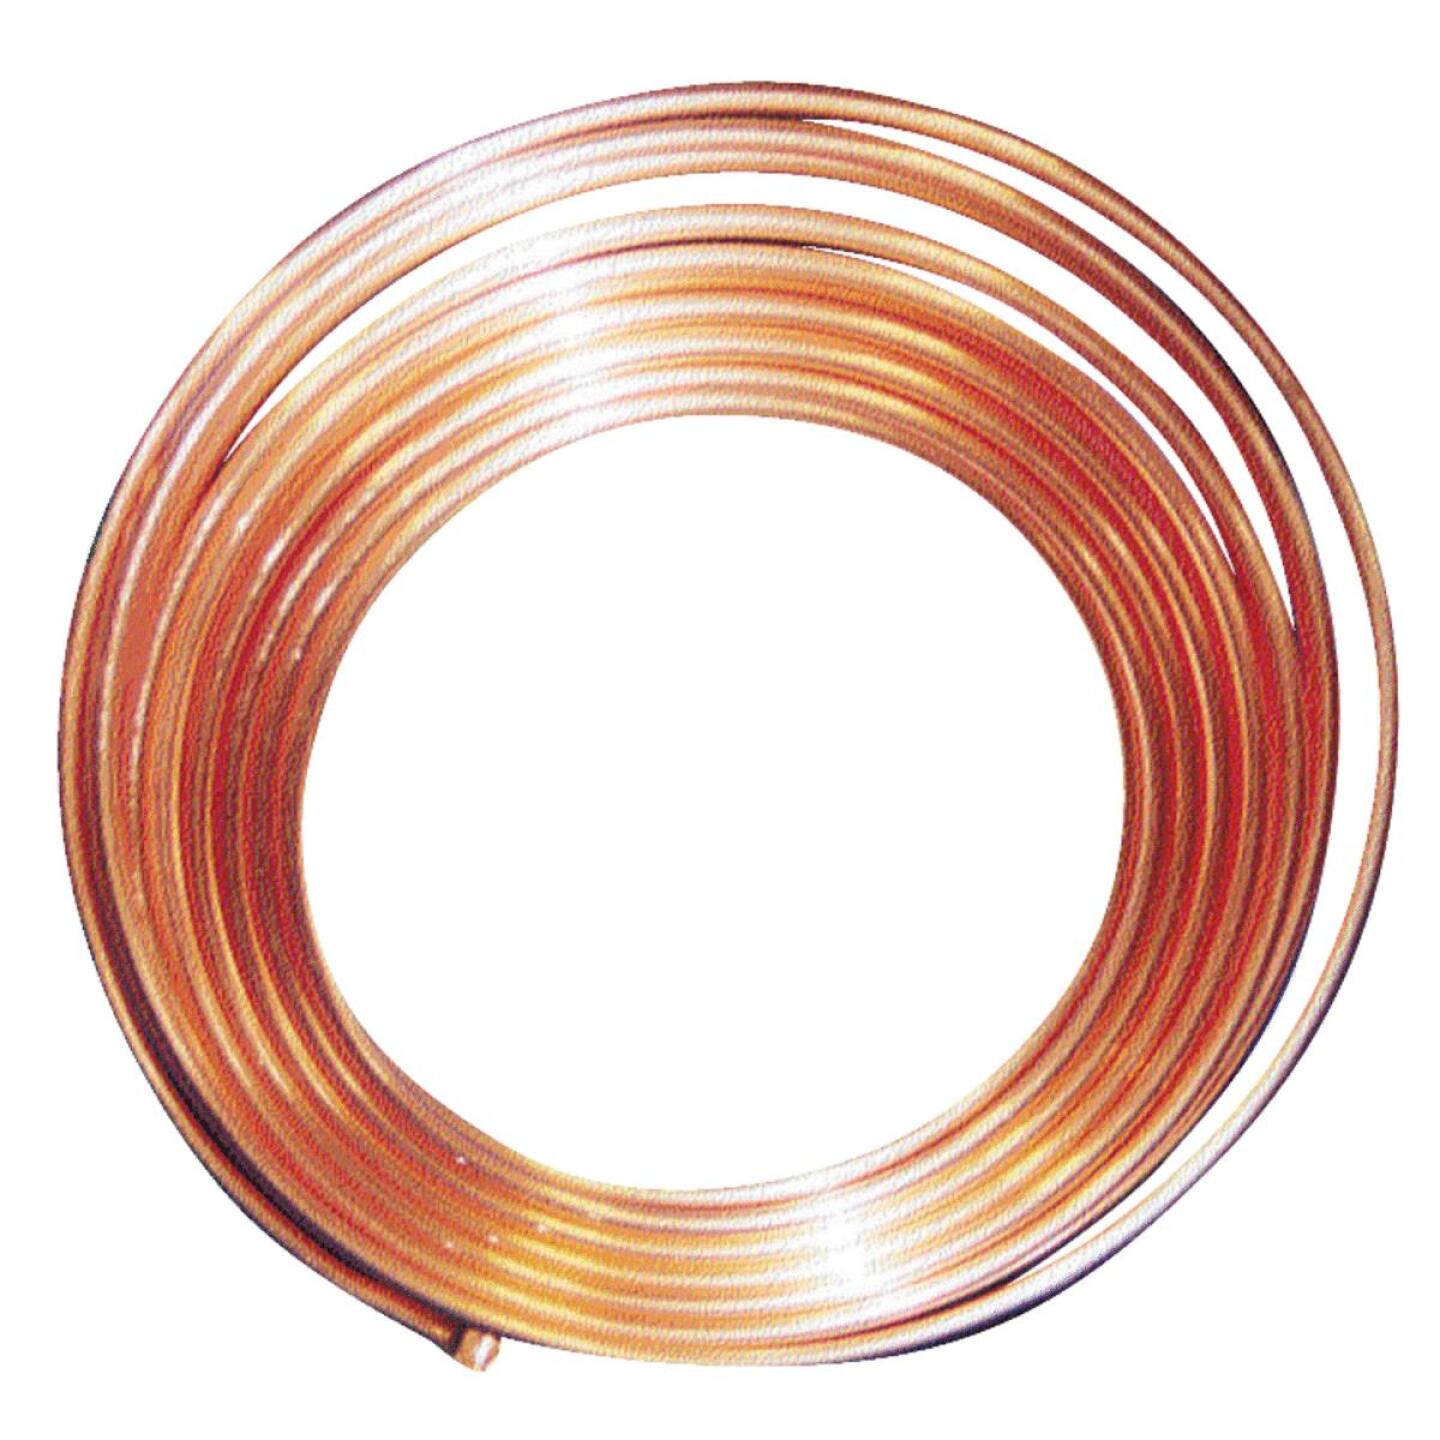 Mueller Streamline 1/4 In. OD x 20 Ft. Refrigerator Copper Tubing Image 1